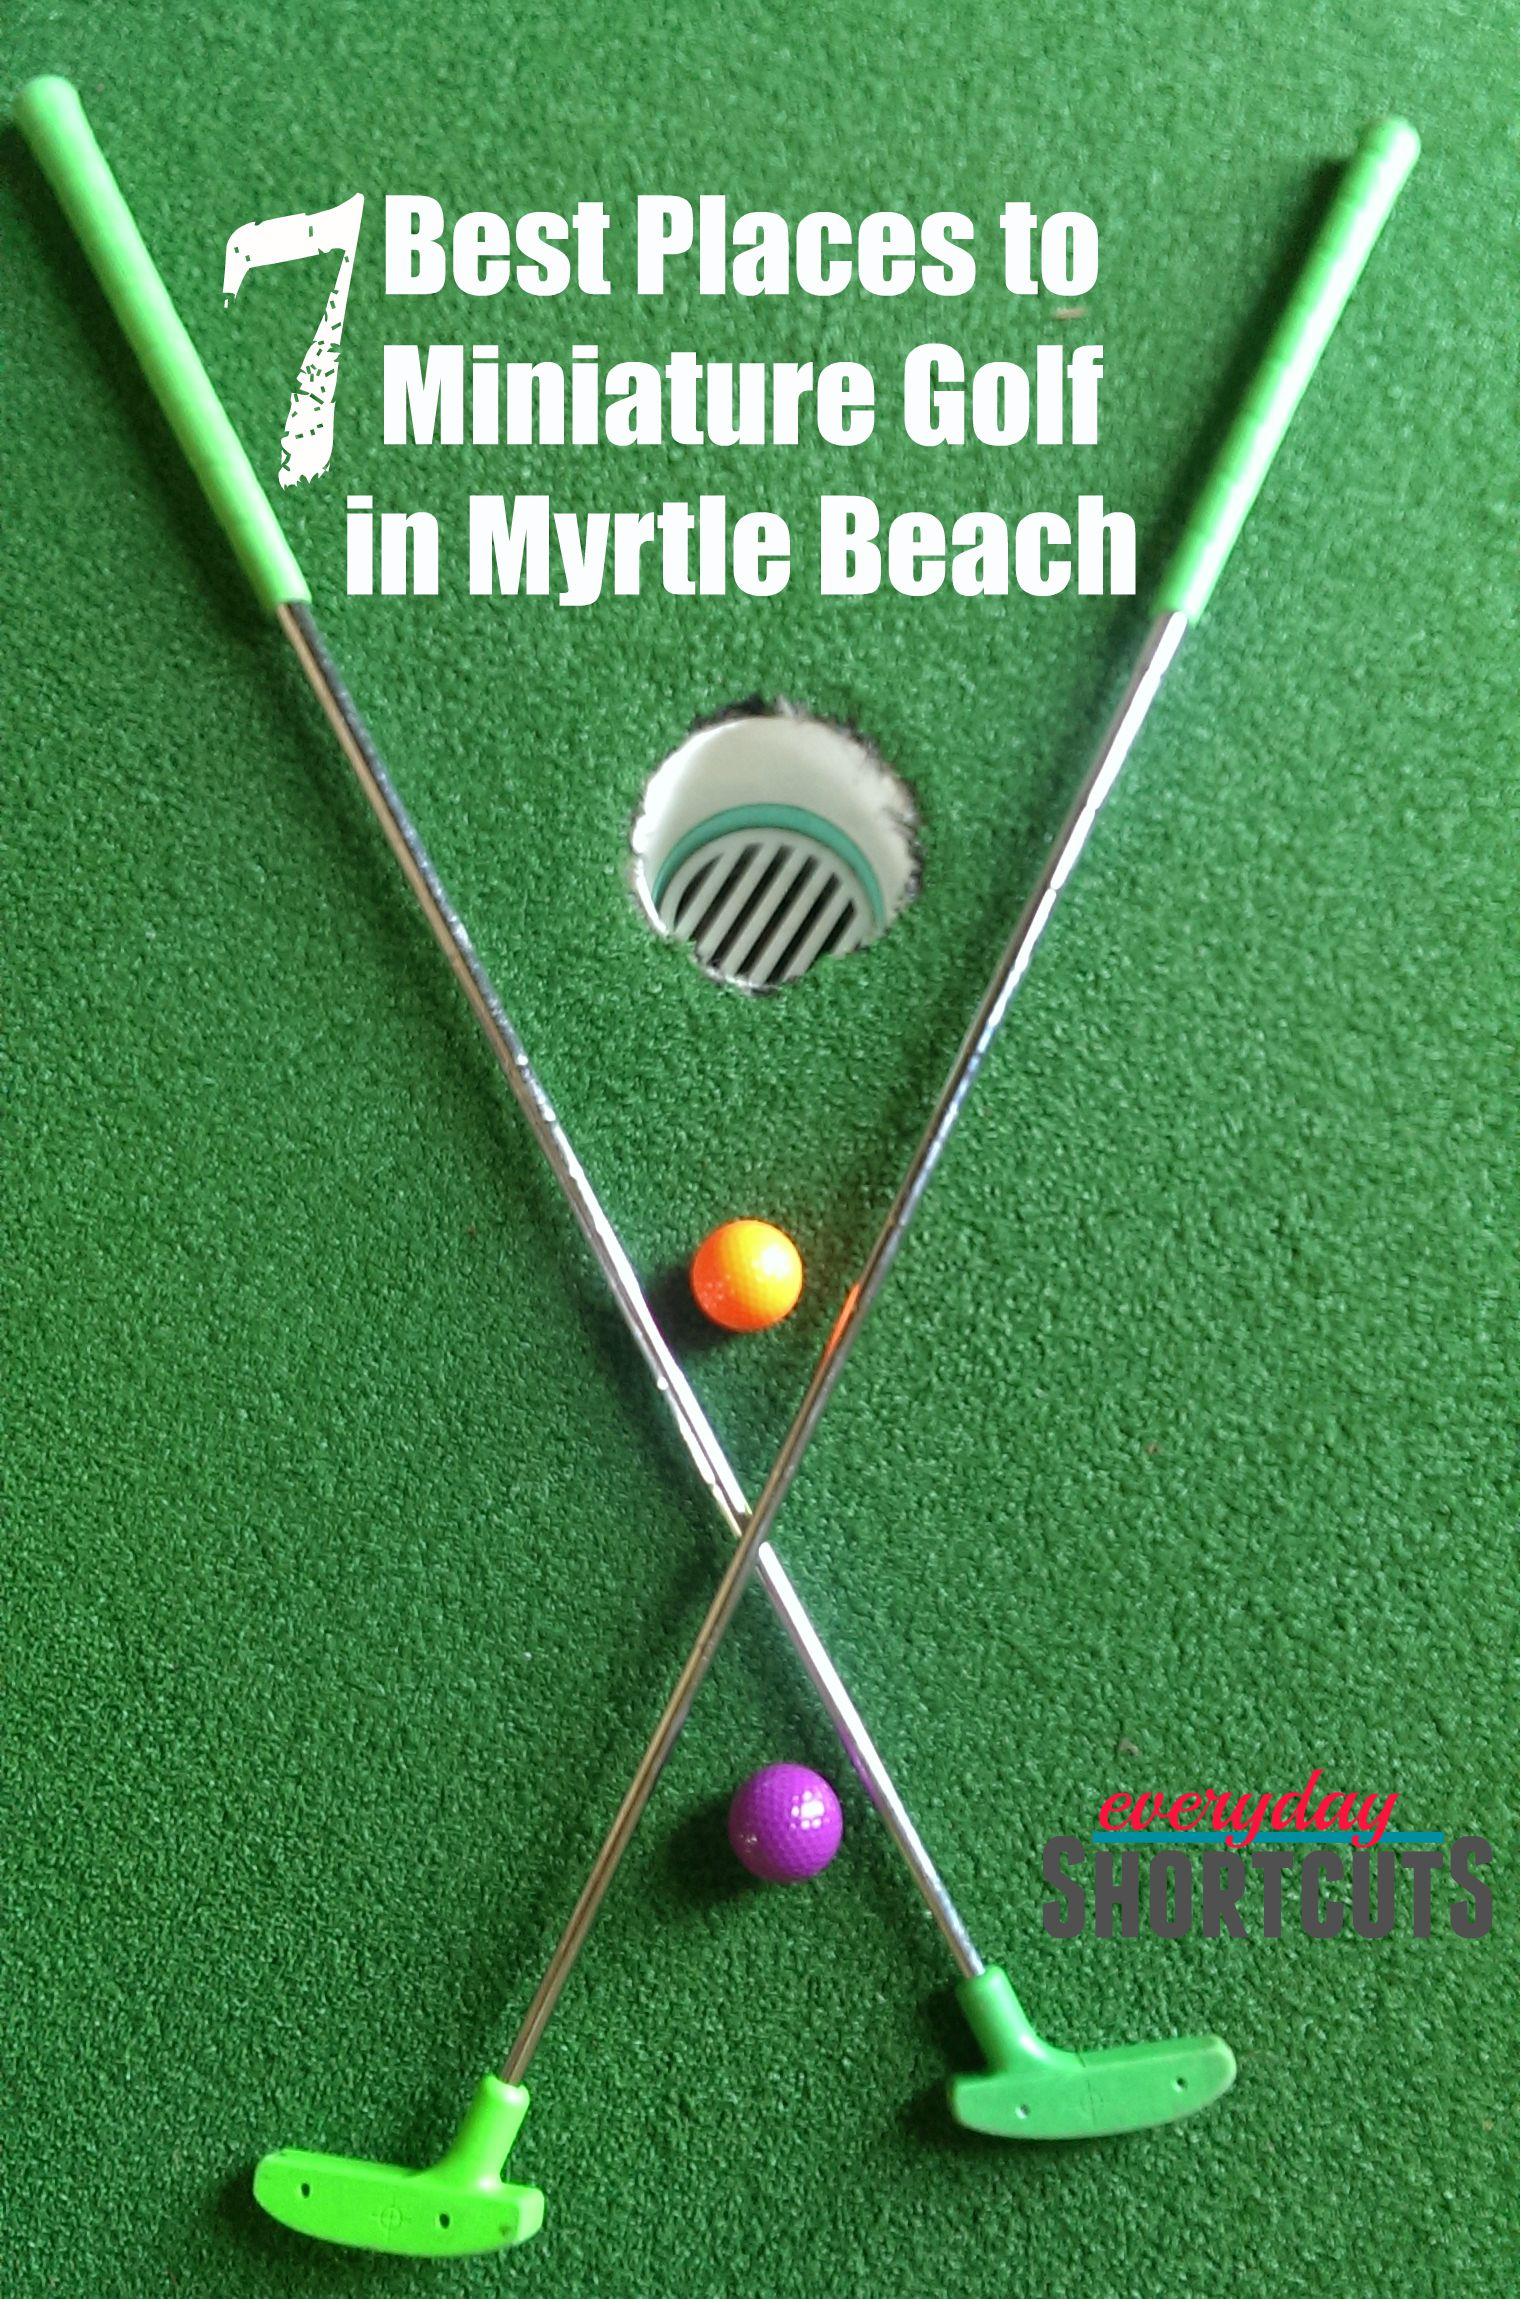 best-places-to-miniature-golf-in-myrtle-beach